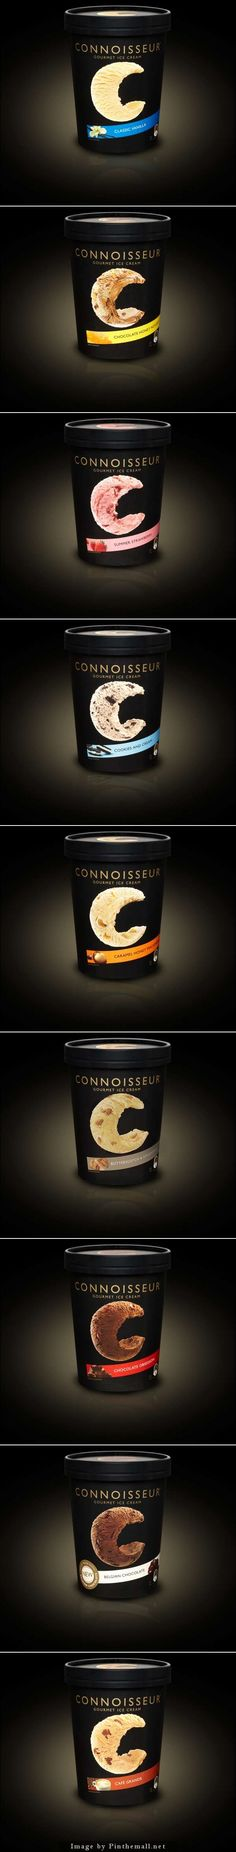 Connoisseur Ice Cream Classic Black Label Range